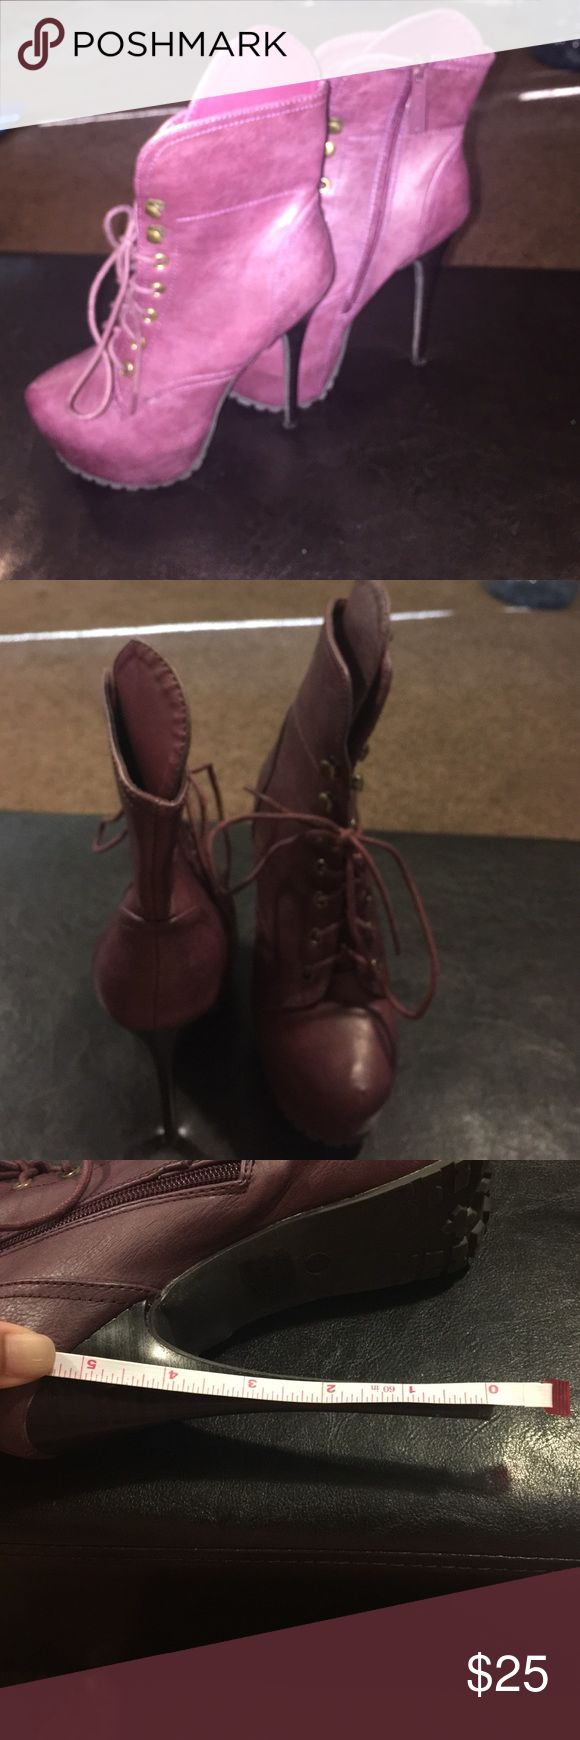 Purple ankle boots Exotic purple ankle boots, worn a handful of times. Boots are in great condition, perfect for the club/lounge scene. Size 7 in women. Shoes Heeled Boots